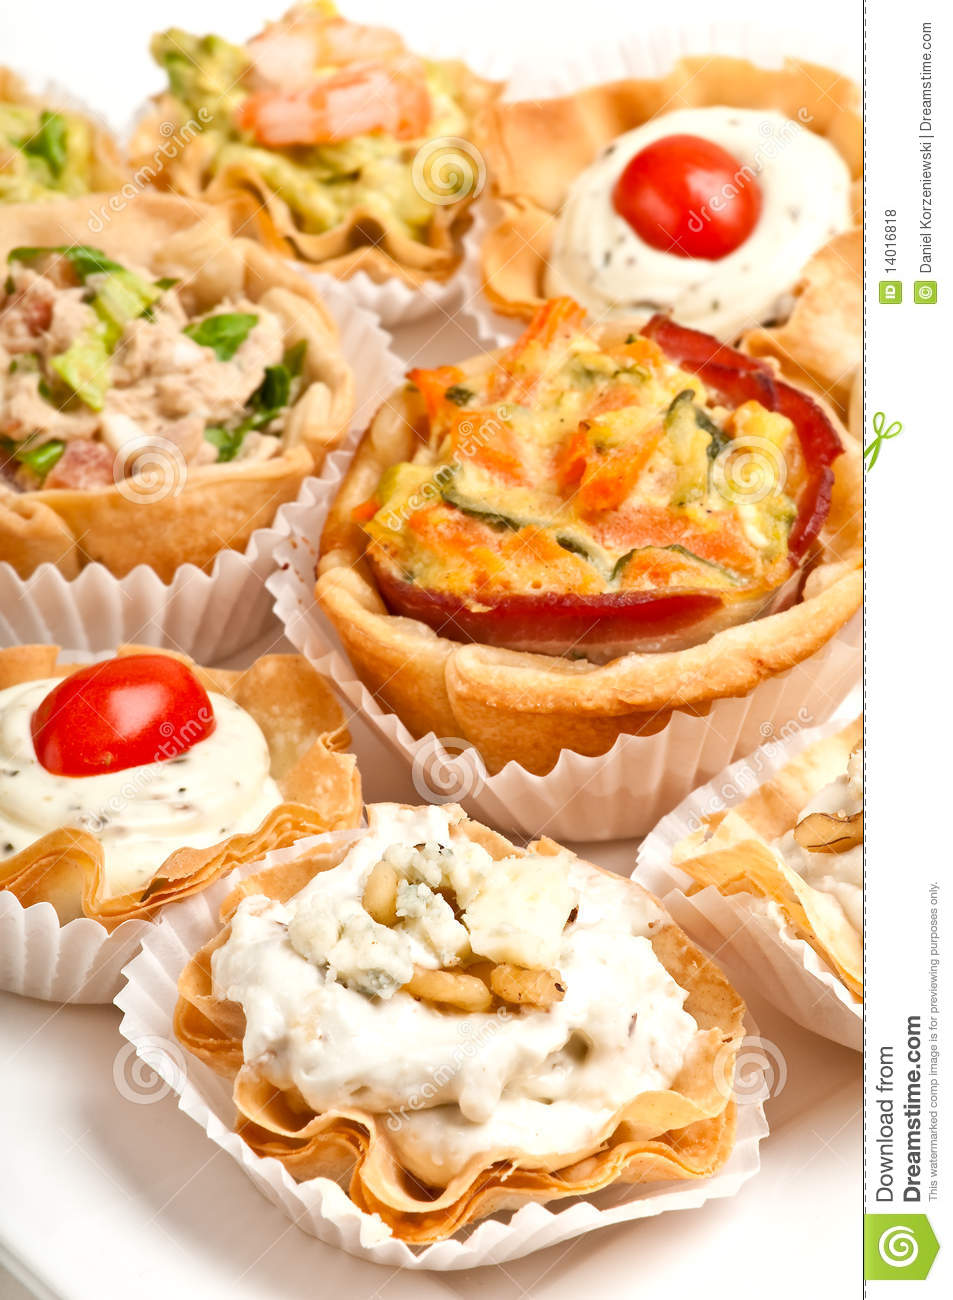 Canapes in a tray royalty free stock photos image 14016818 for Puff pastry canape